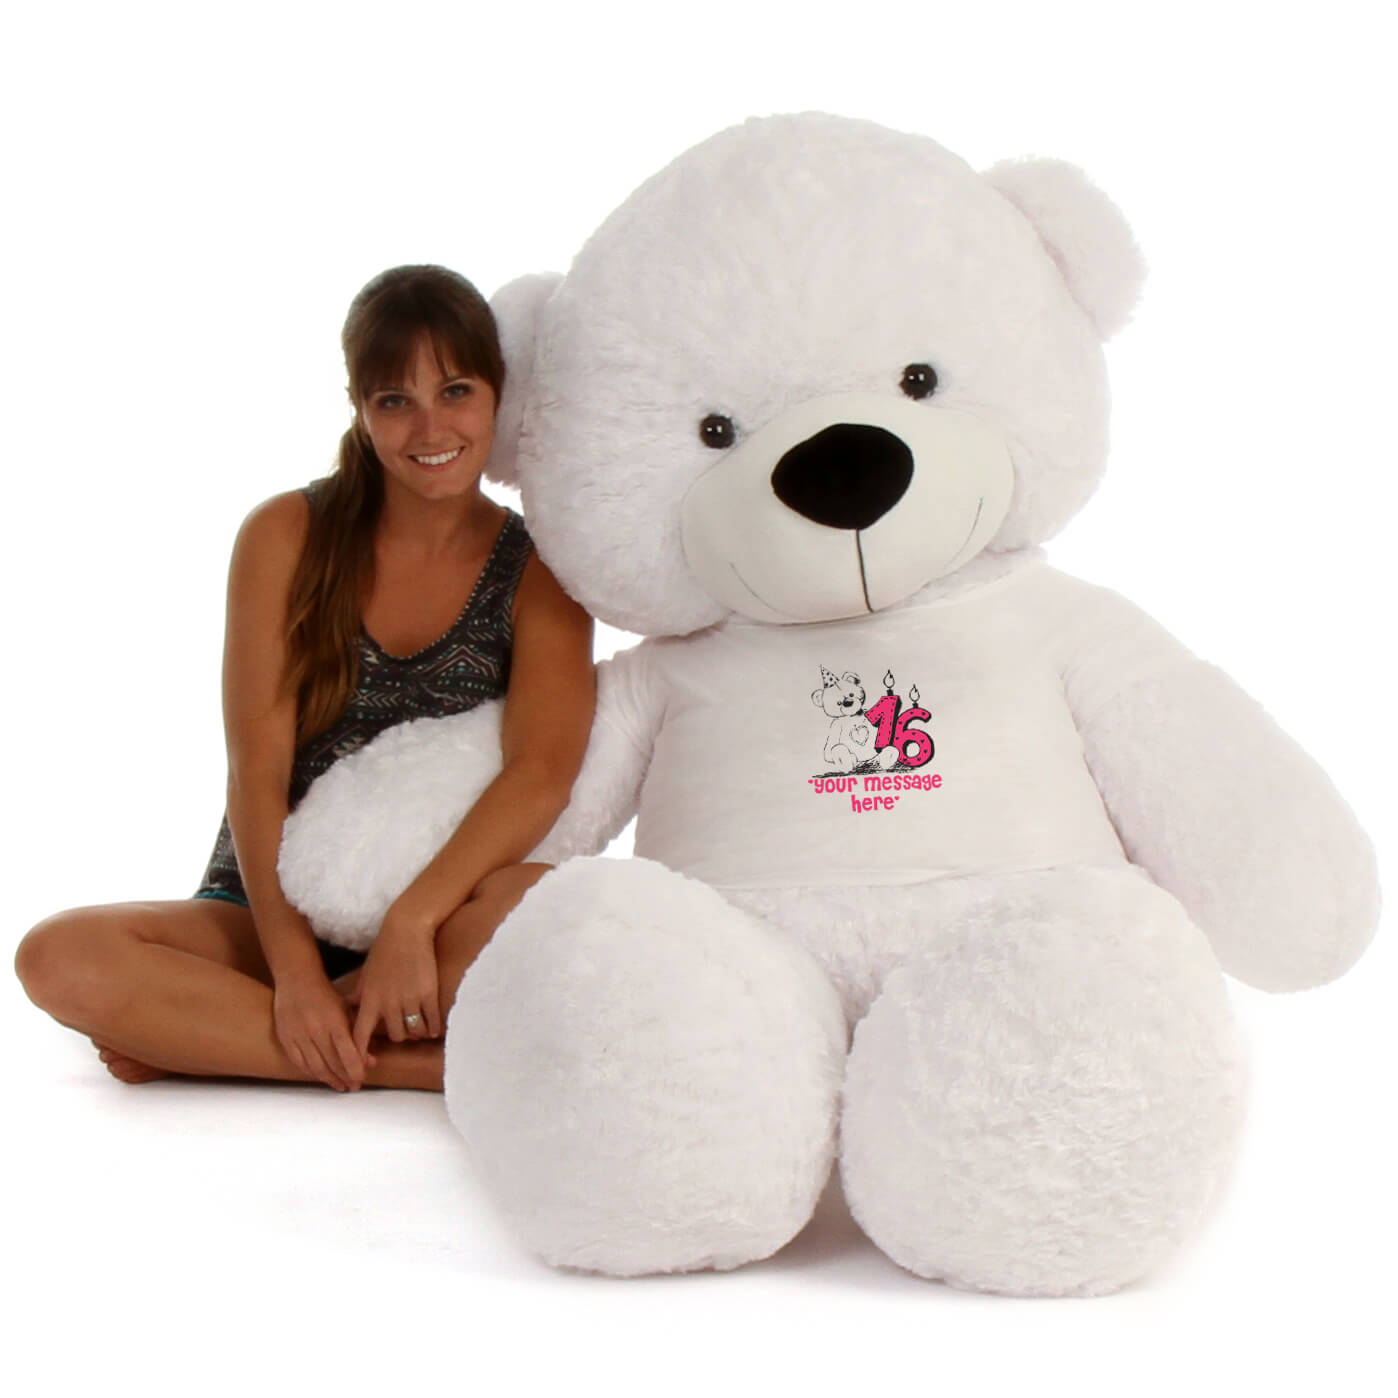 6ft-giant-teddy-coco-cuddles-white-bear-in-a-happy-birthday-your-message-here-t-shirt.jpg